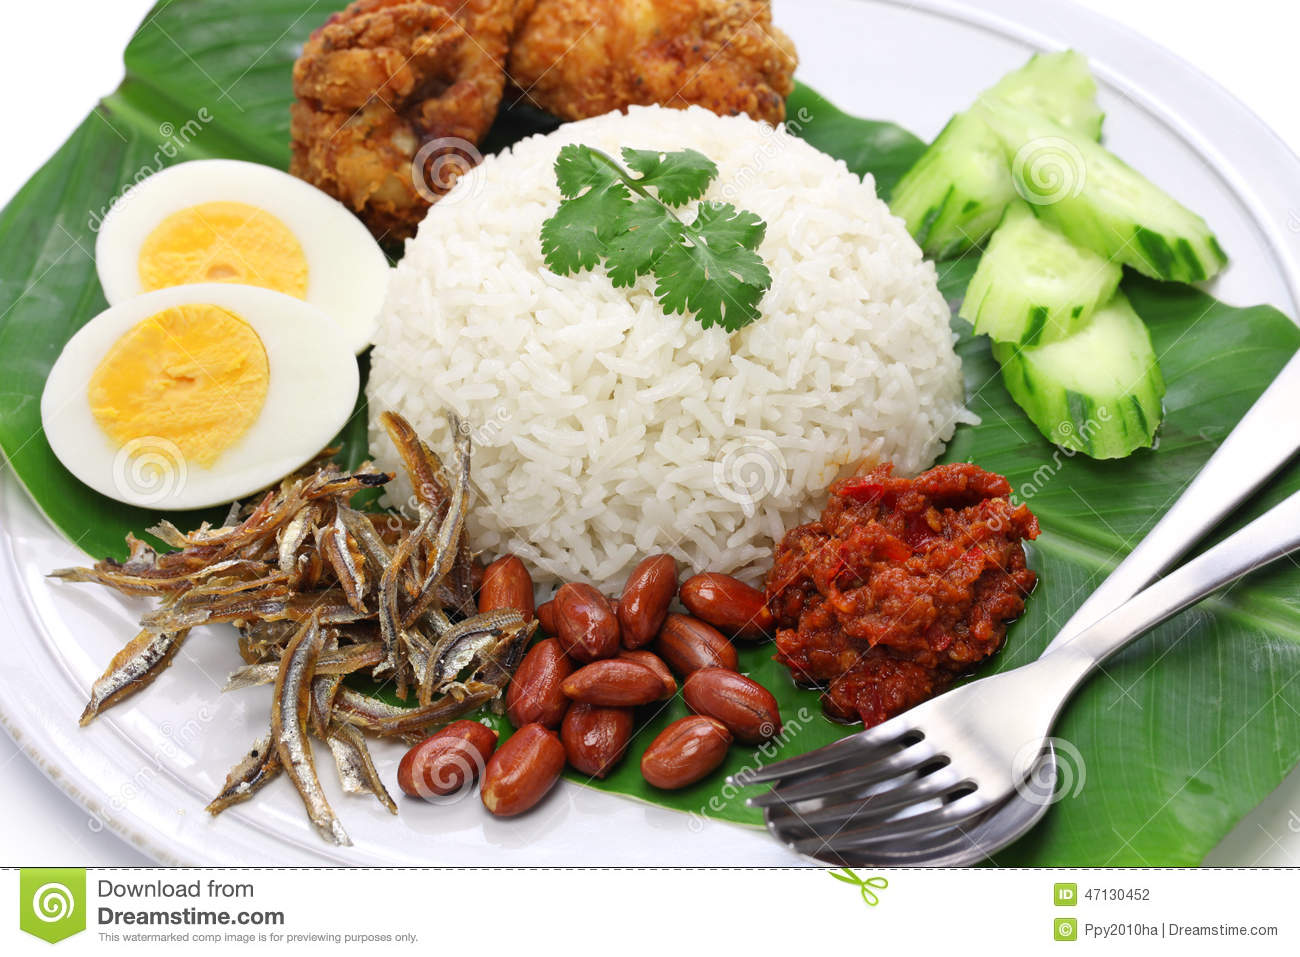 Nasi lemak coconut milk rice malaysian cuisine stock for Authentic malaysian cuisine